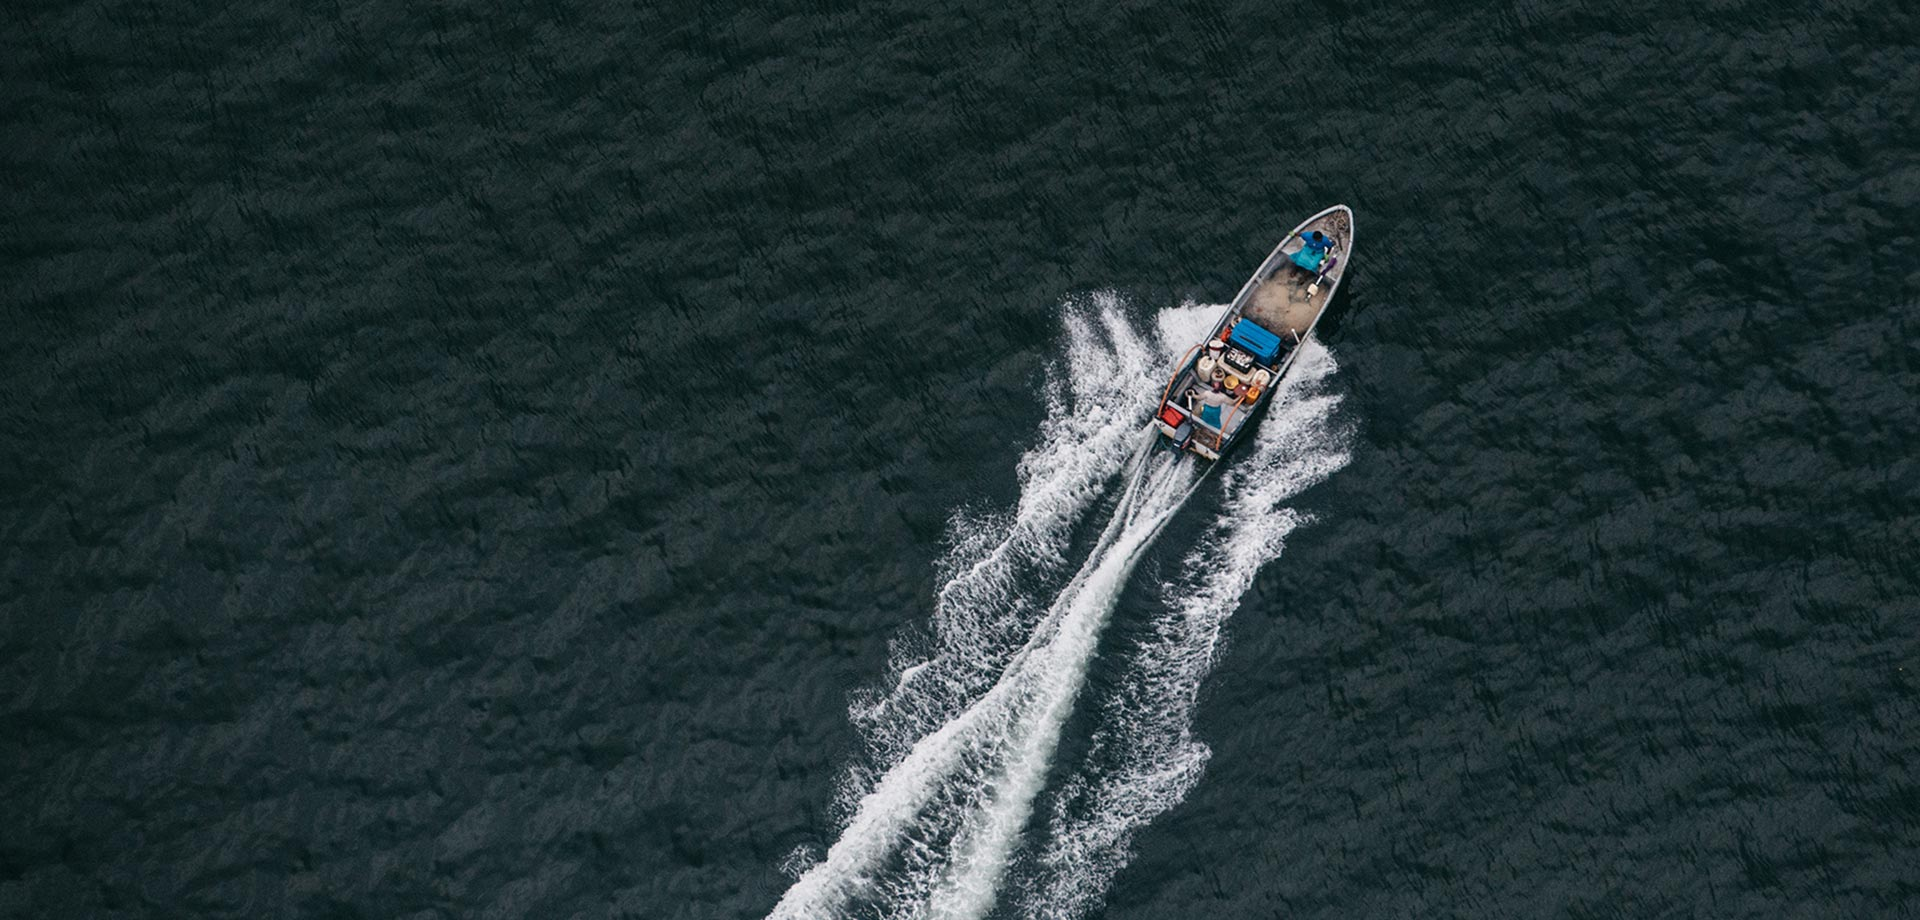 overhead photo of speedboat in water taken according to rule of thirds